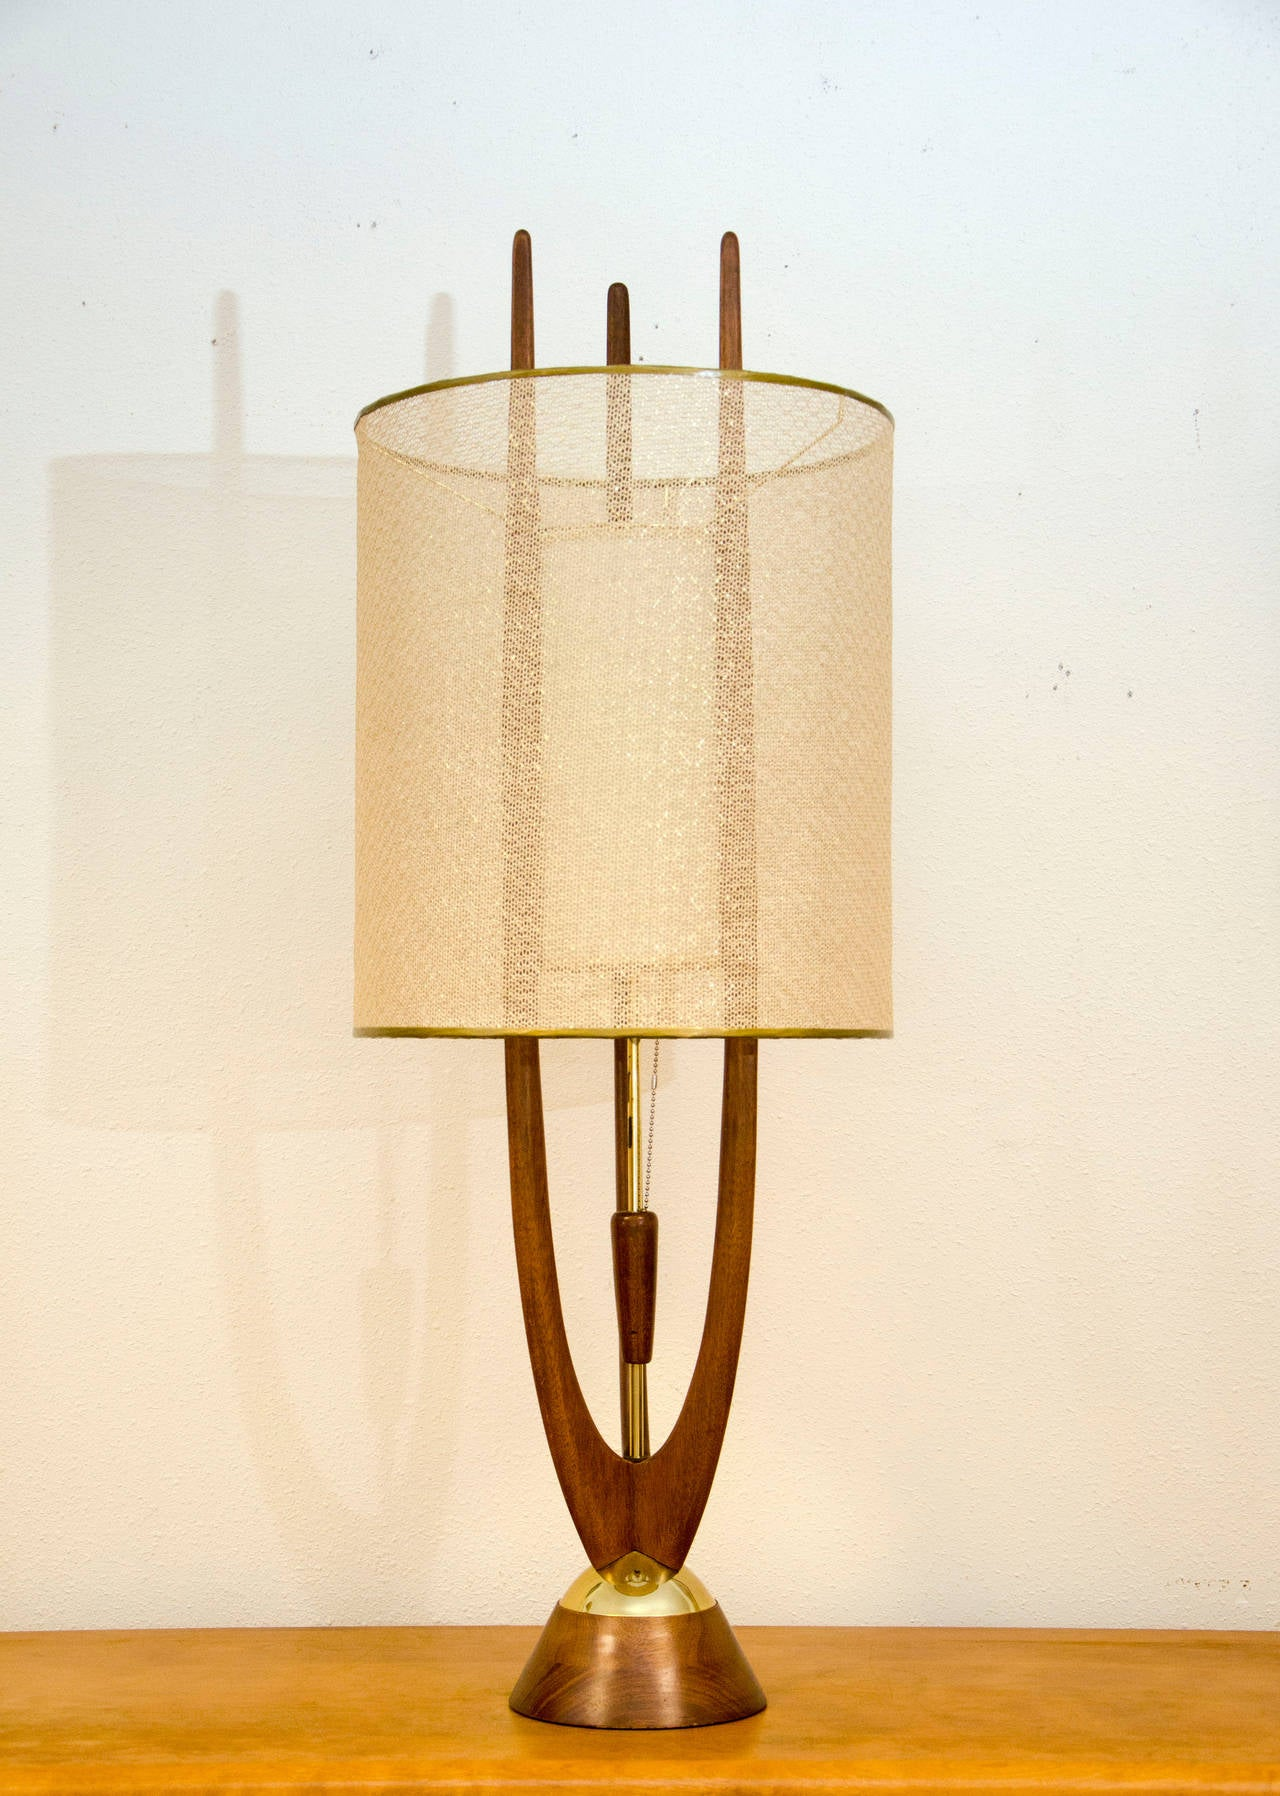 midcentury table lamp modeline at stdibs - midcentury table lamp modeline